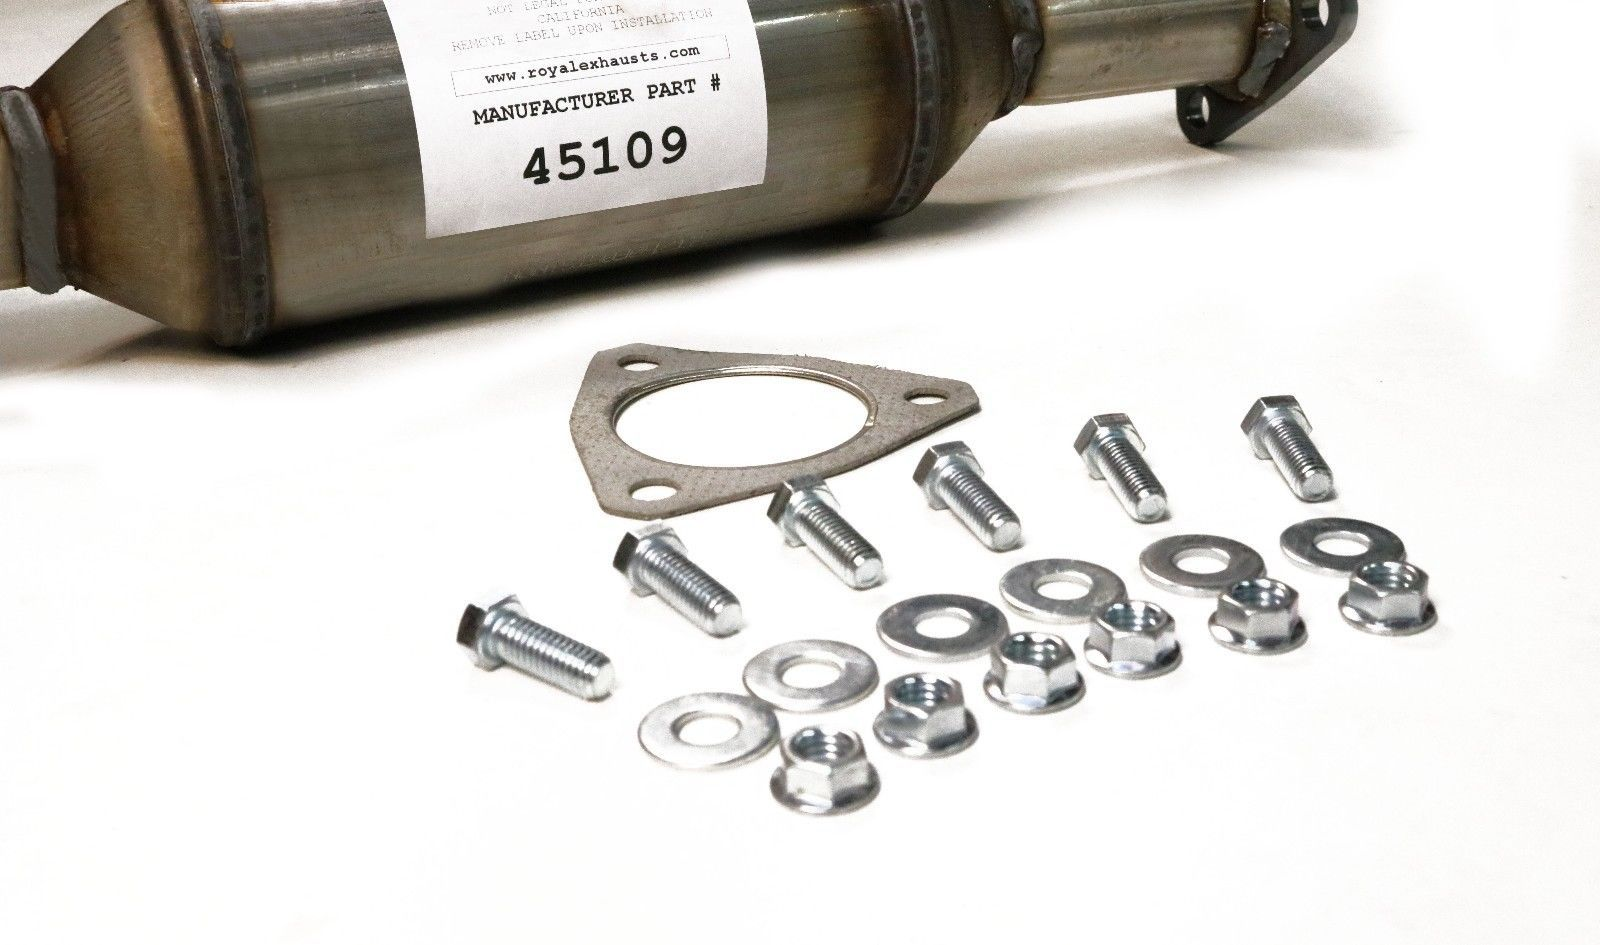 LX Coupe /& Sedan EX Direct Fit with Gaskets /& Bolts Included Flex Pipe Replacement for 2003-2007 Honda Accord 2.4L DX